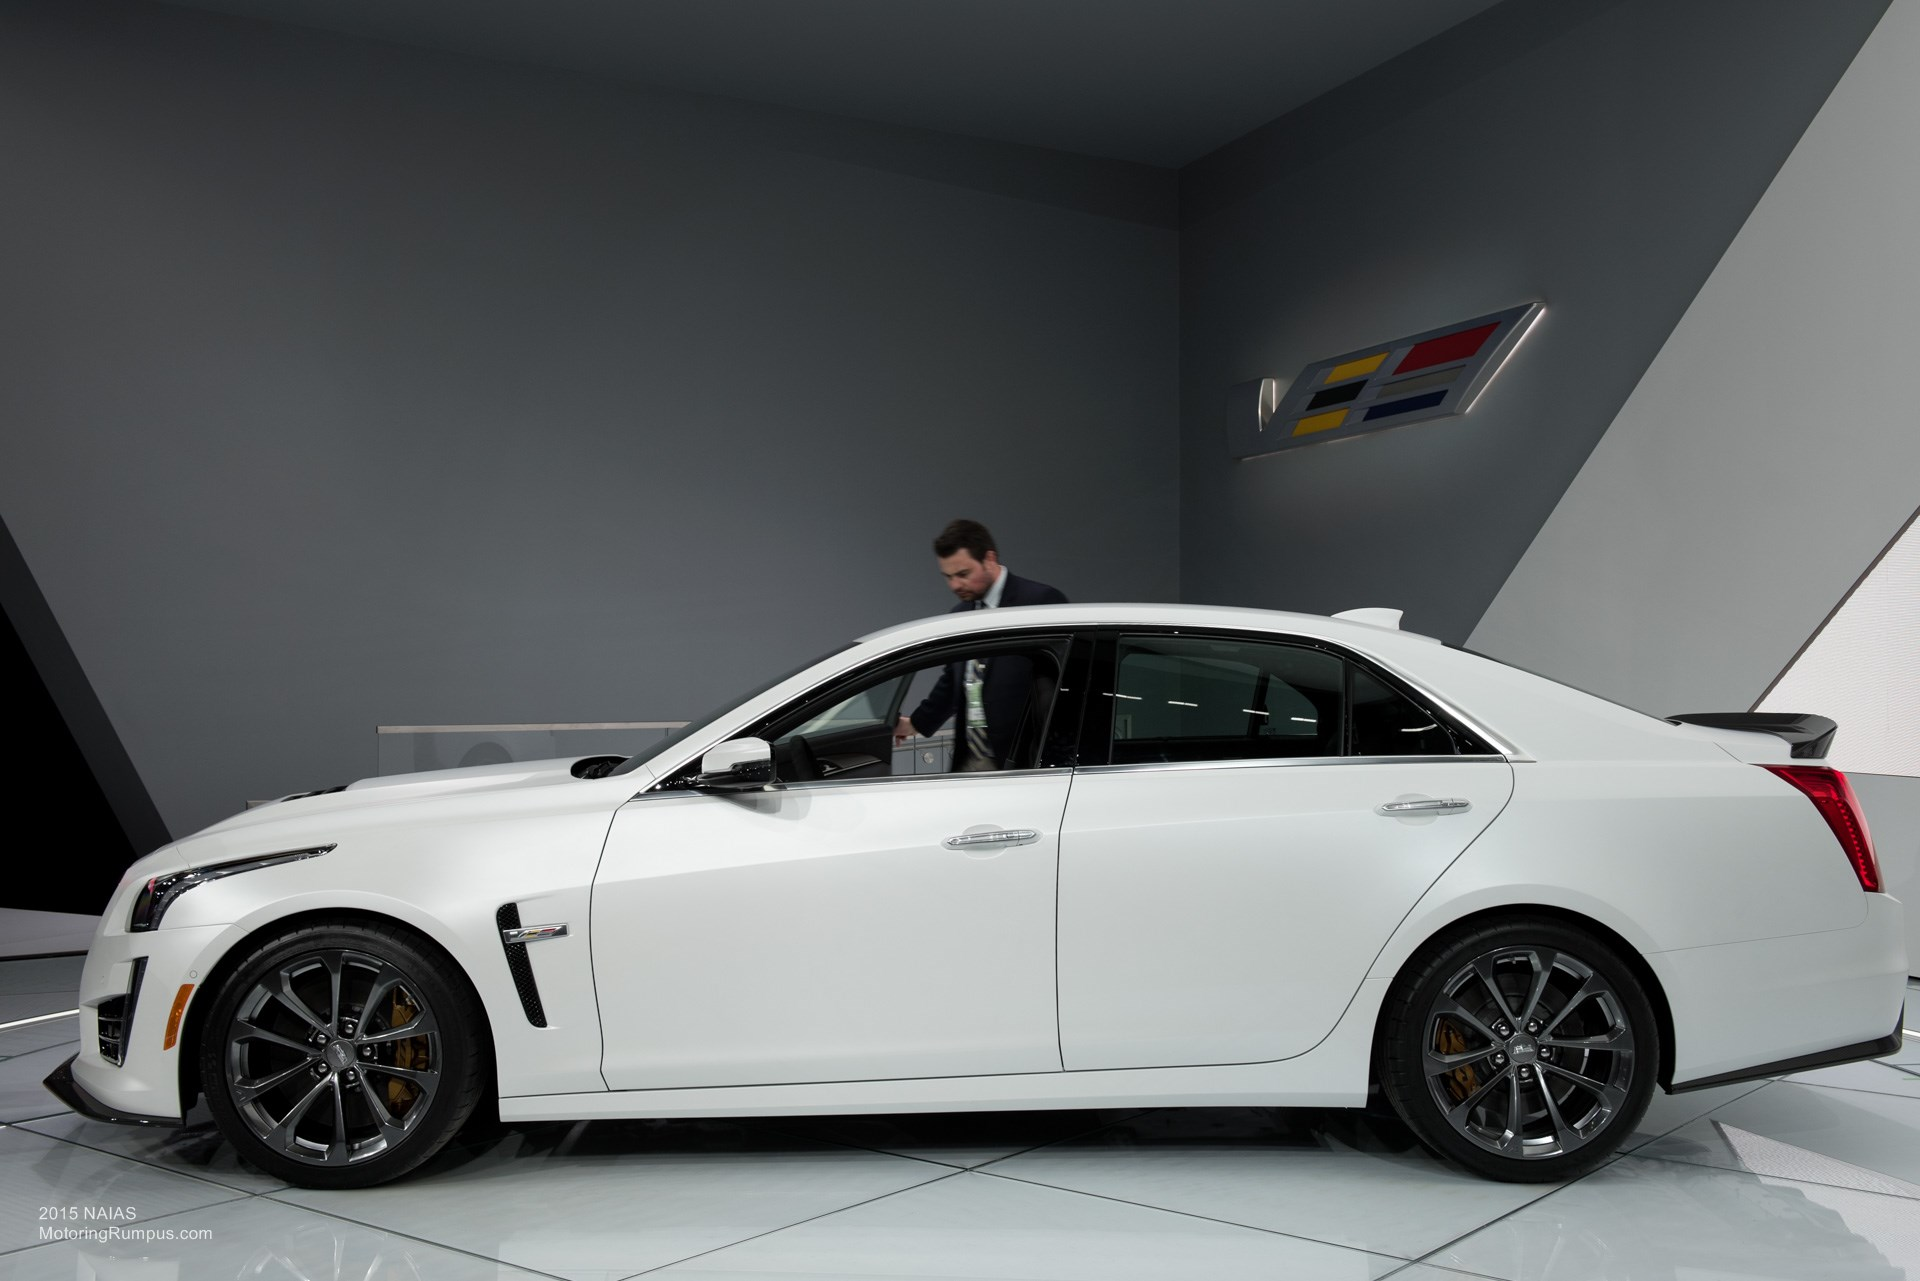 2015 NAIAS Cadillac CTS-V Side